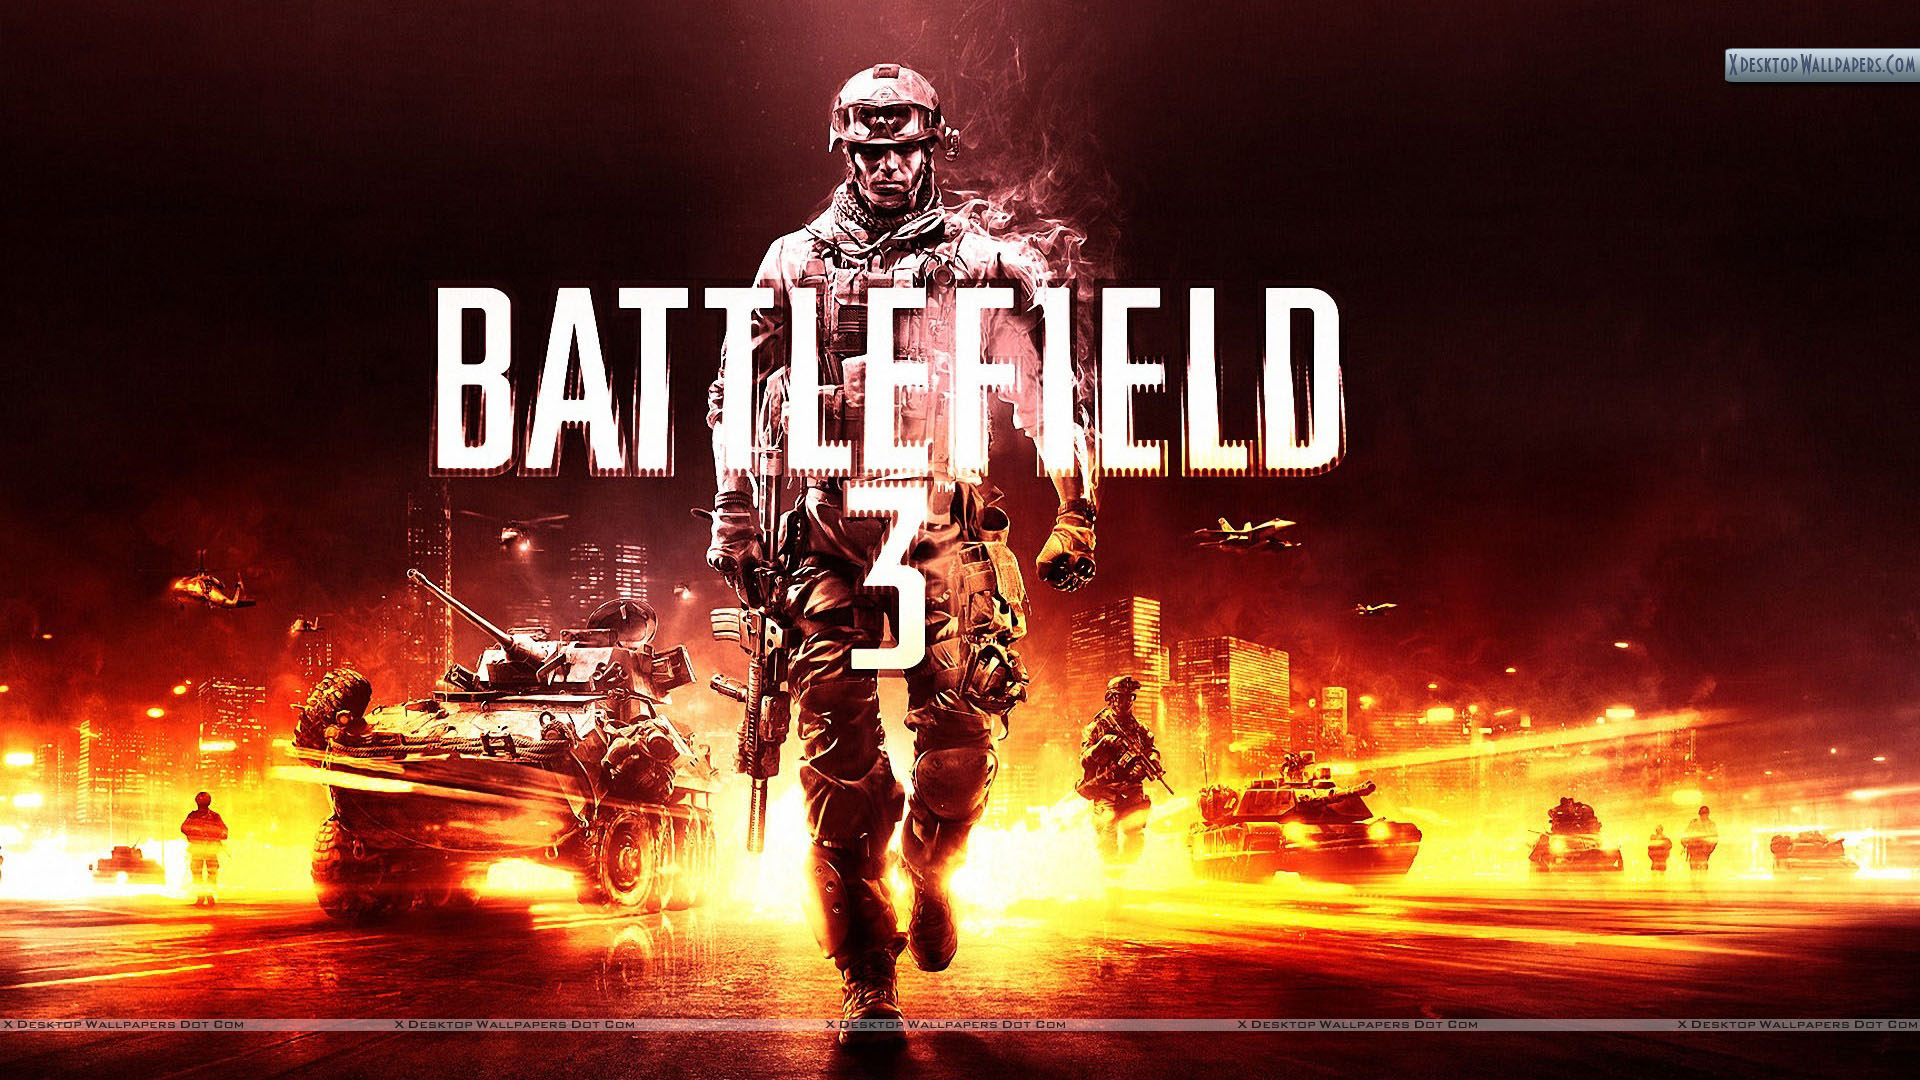 Battlefield 3 red poster wallpaper you are viewing wallpaper titled battlefield 3 voltagebd Image collections